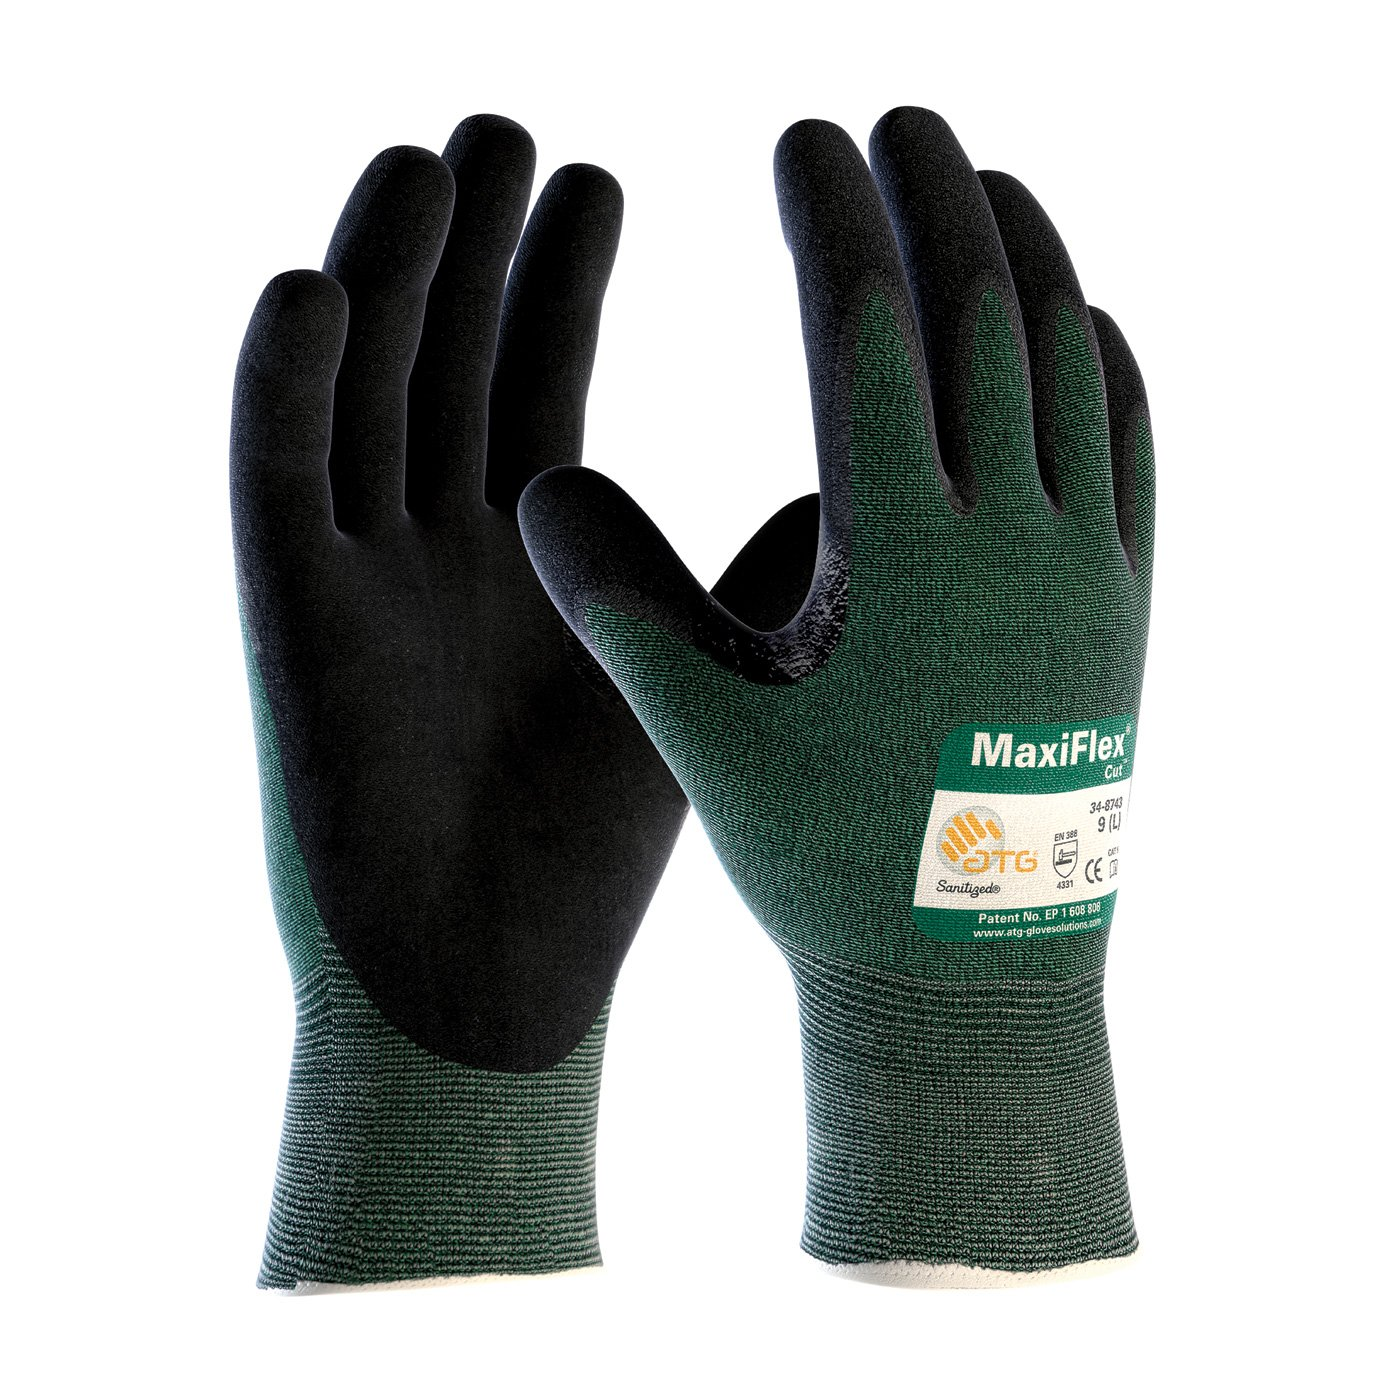 PIP ATG 34-8743/XL X-Large MaxiFlex Cut, Green Engineered Yarn, Black Gloves, 3-Pack